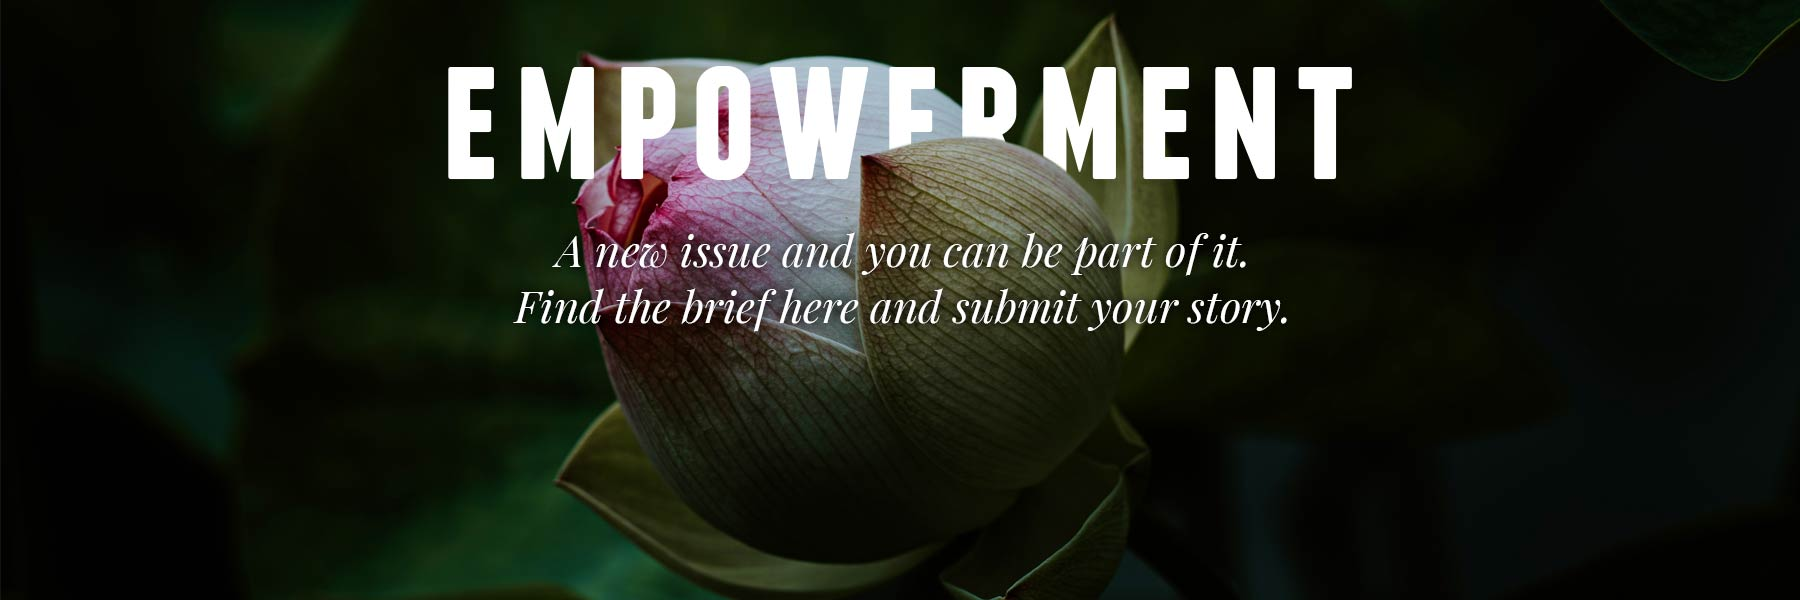 Empowerment-issue Submit